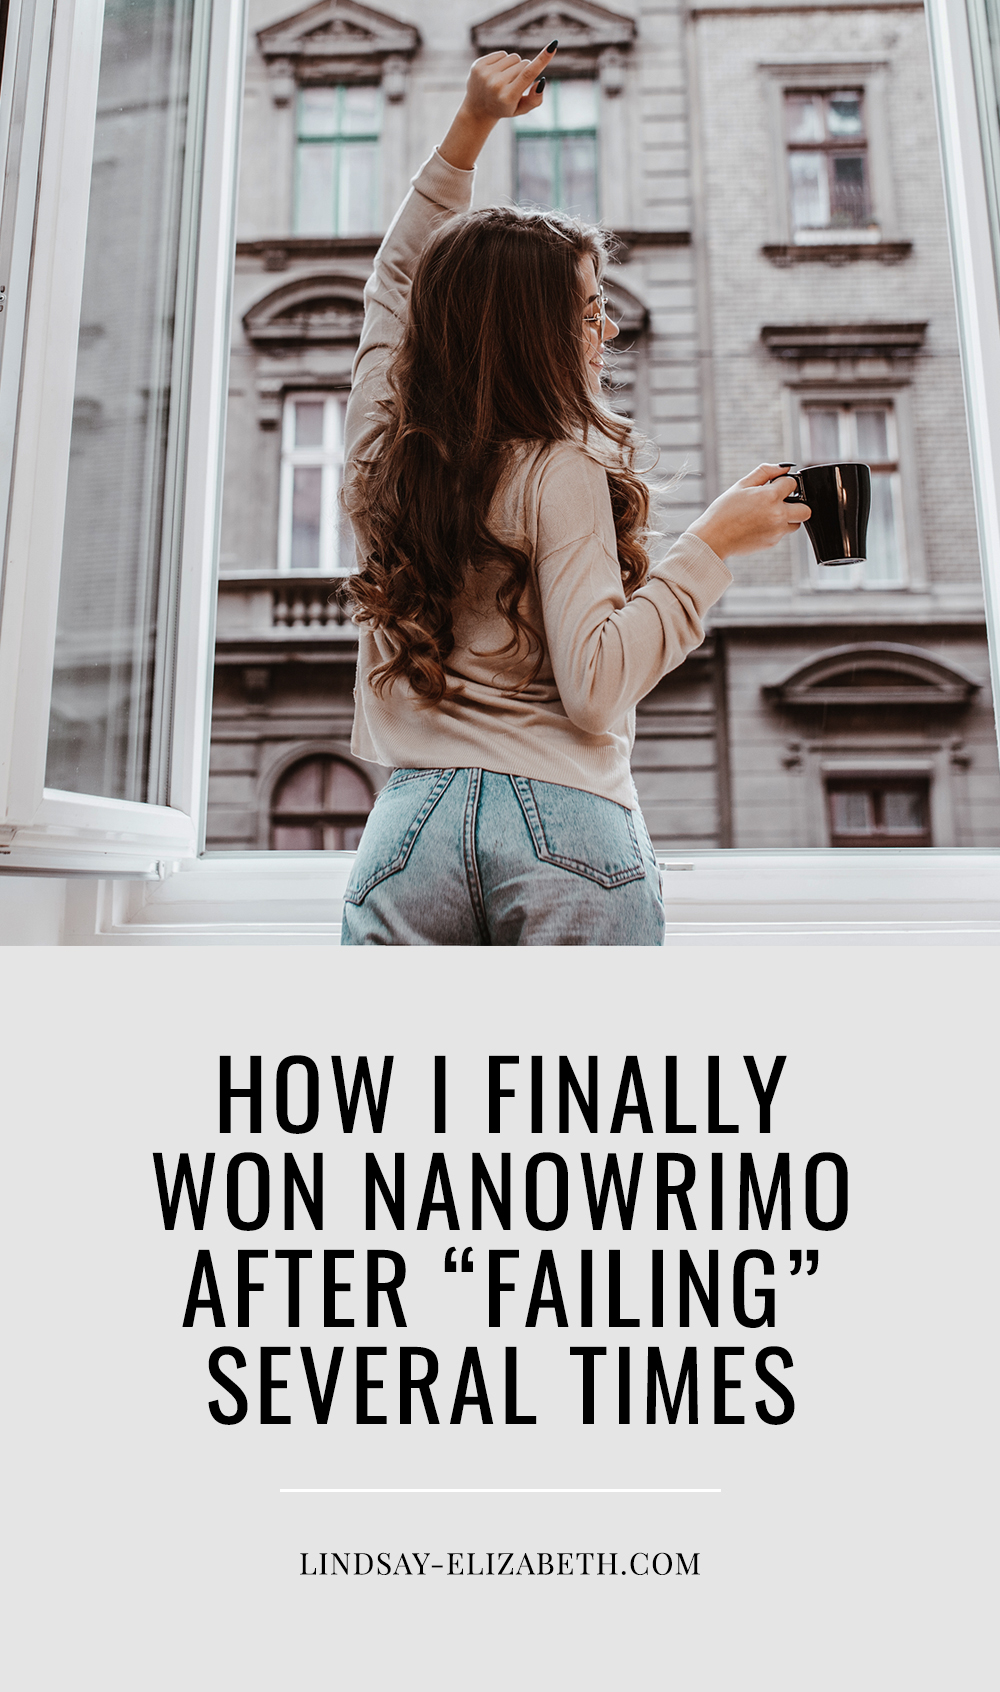 After suffering from creative blocks that led to multiple failed attempts at NaNoWriMo, I finally experienced breakthroughs that helped me write 50,000 words in one month win the challenge. Here are my tips on beating writer's block and winning NaNoWriMo.